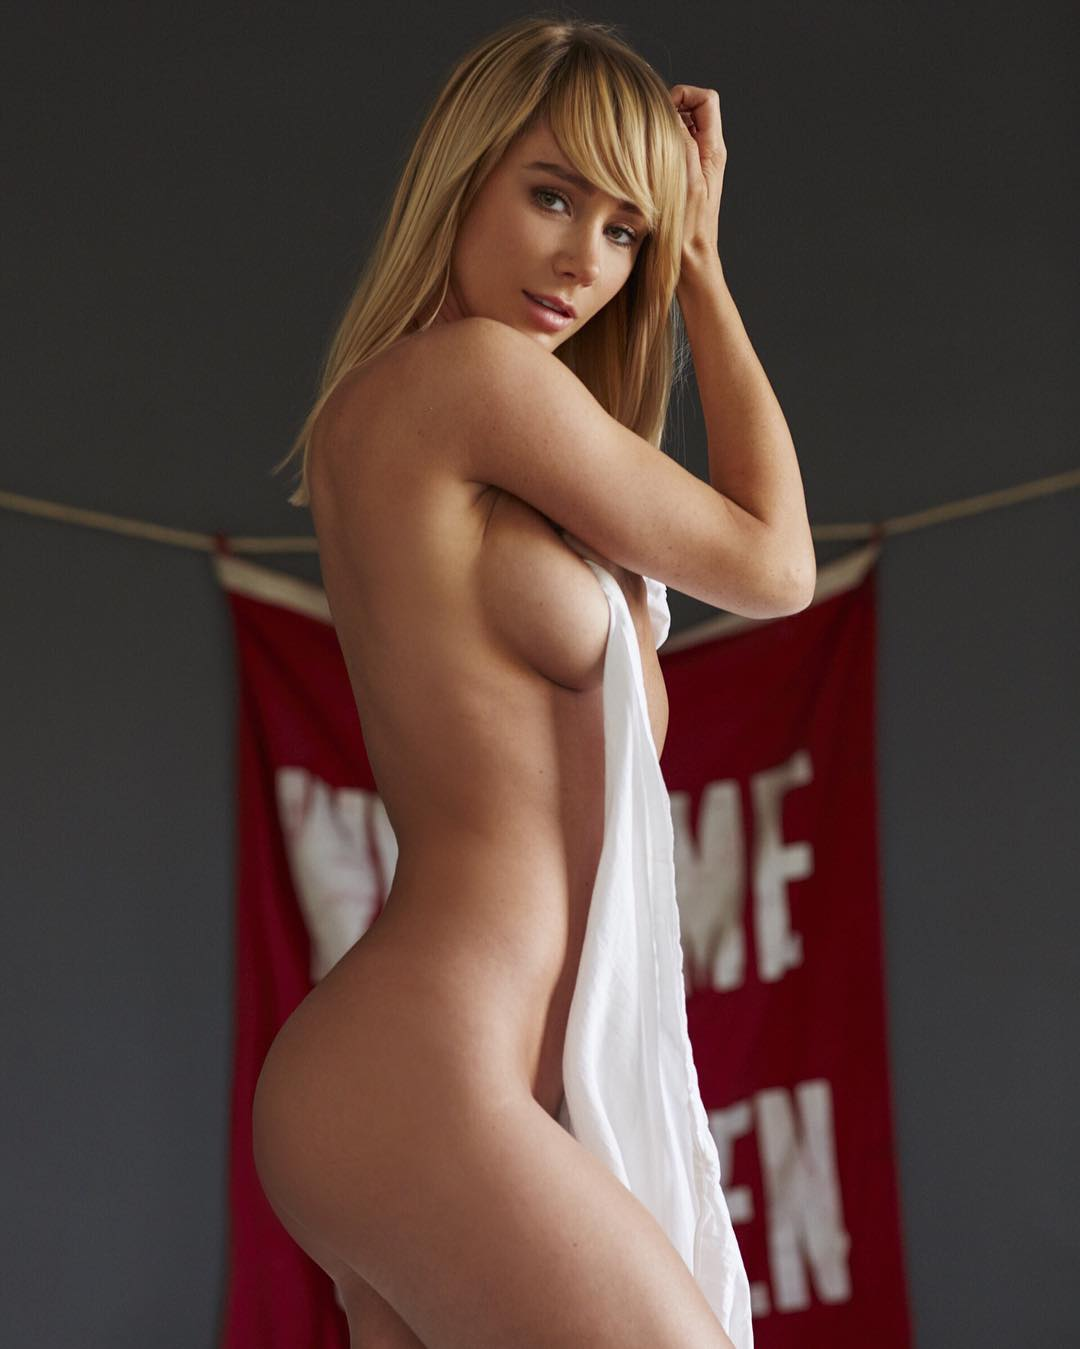 Sara Underwood Nude Photo...